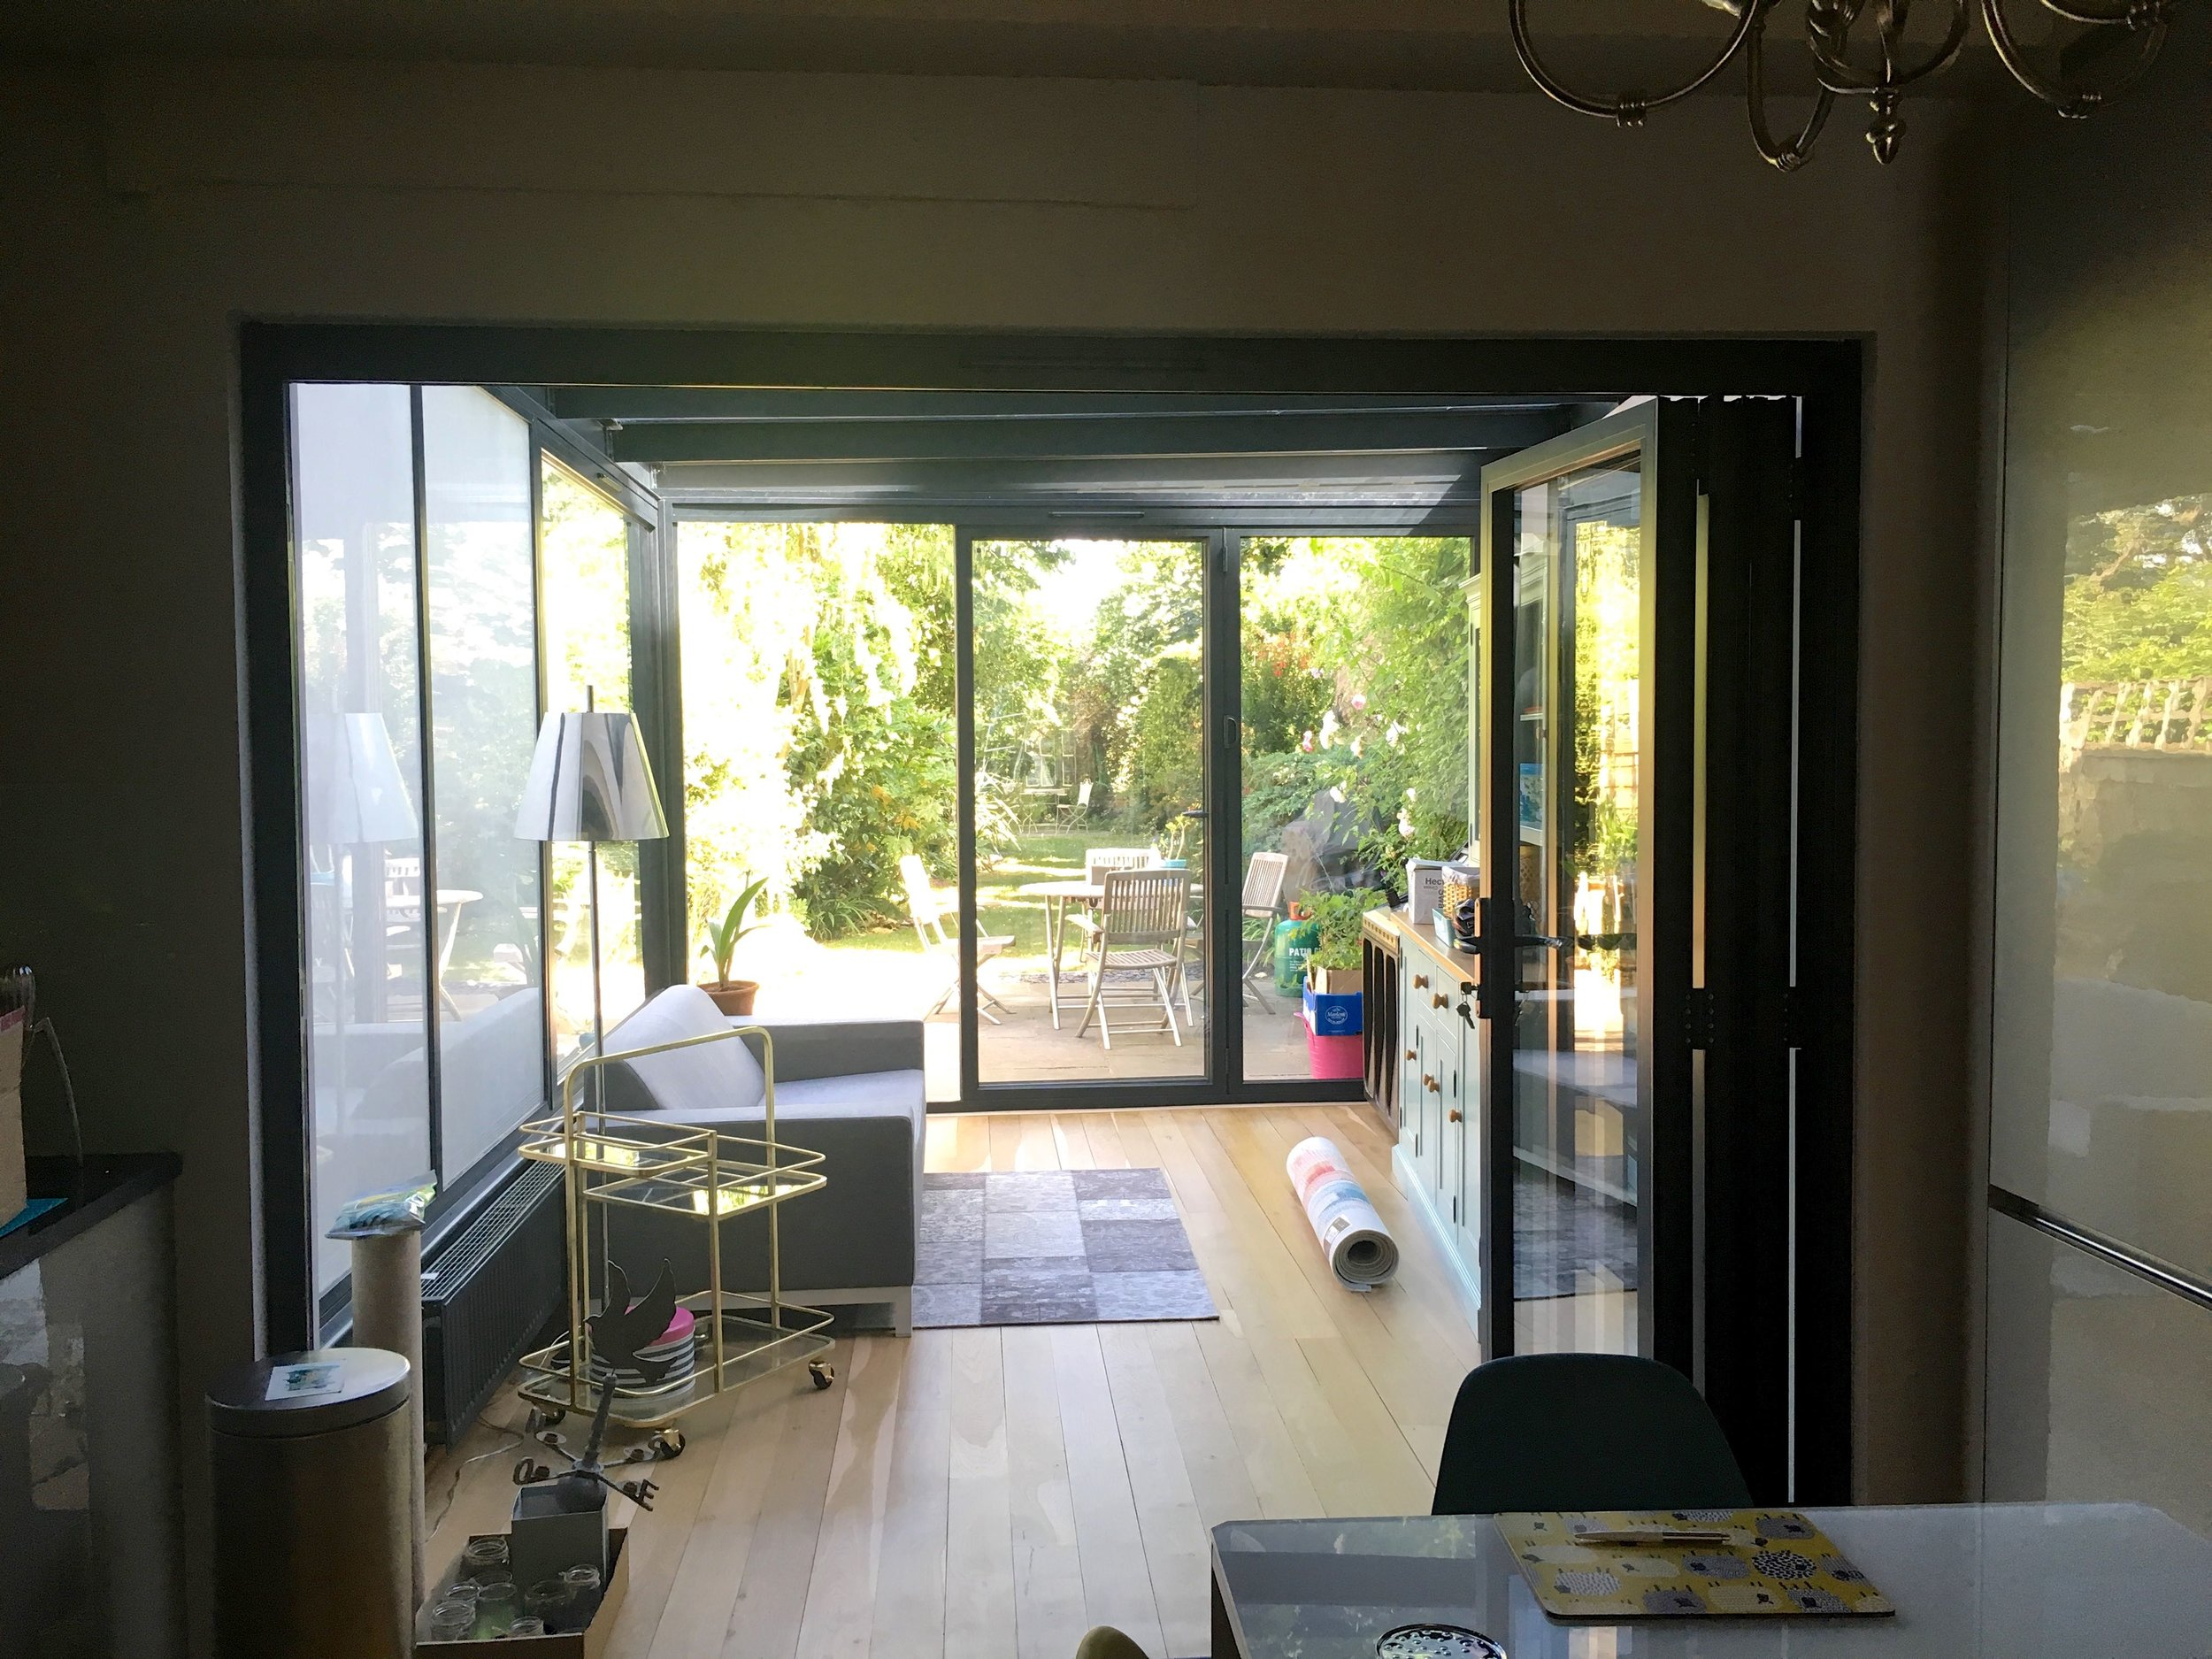 The bifold doors really open up the back of the house